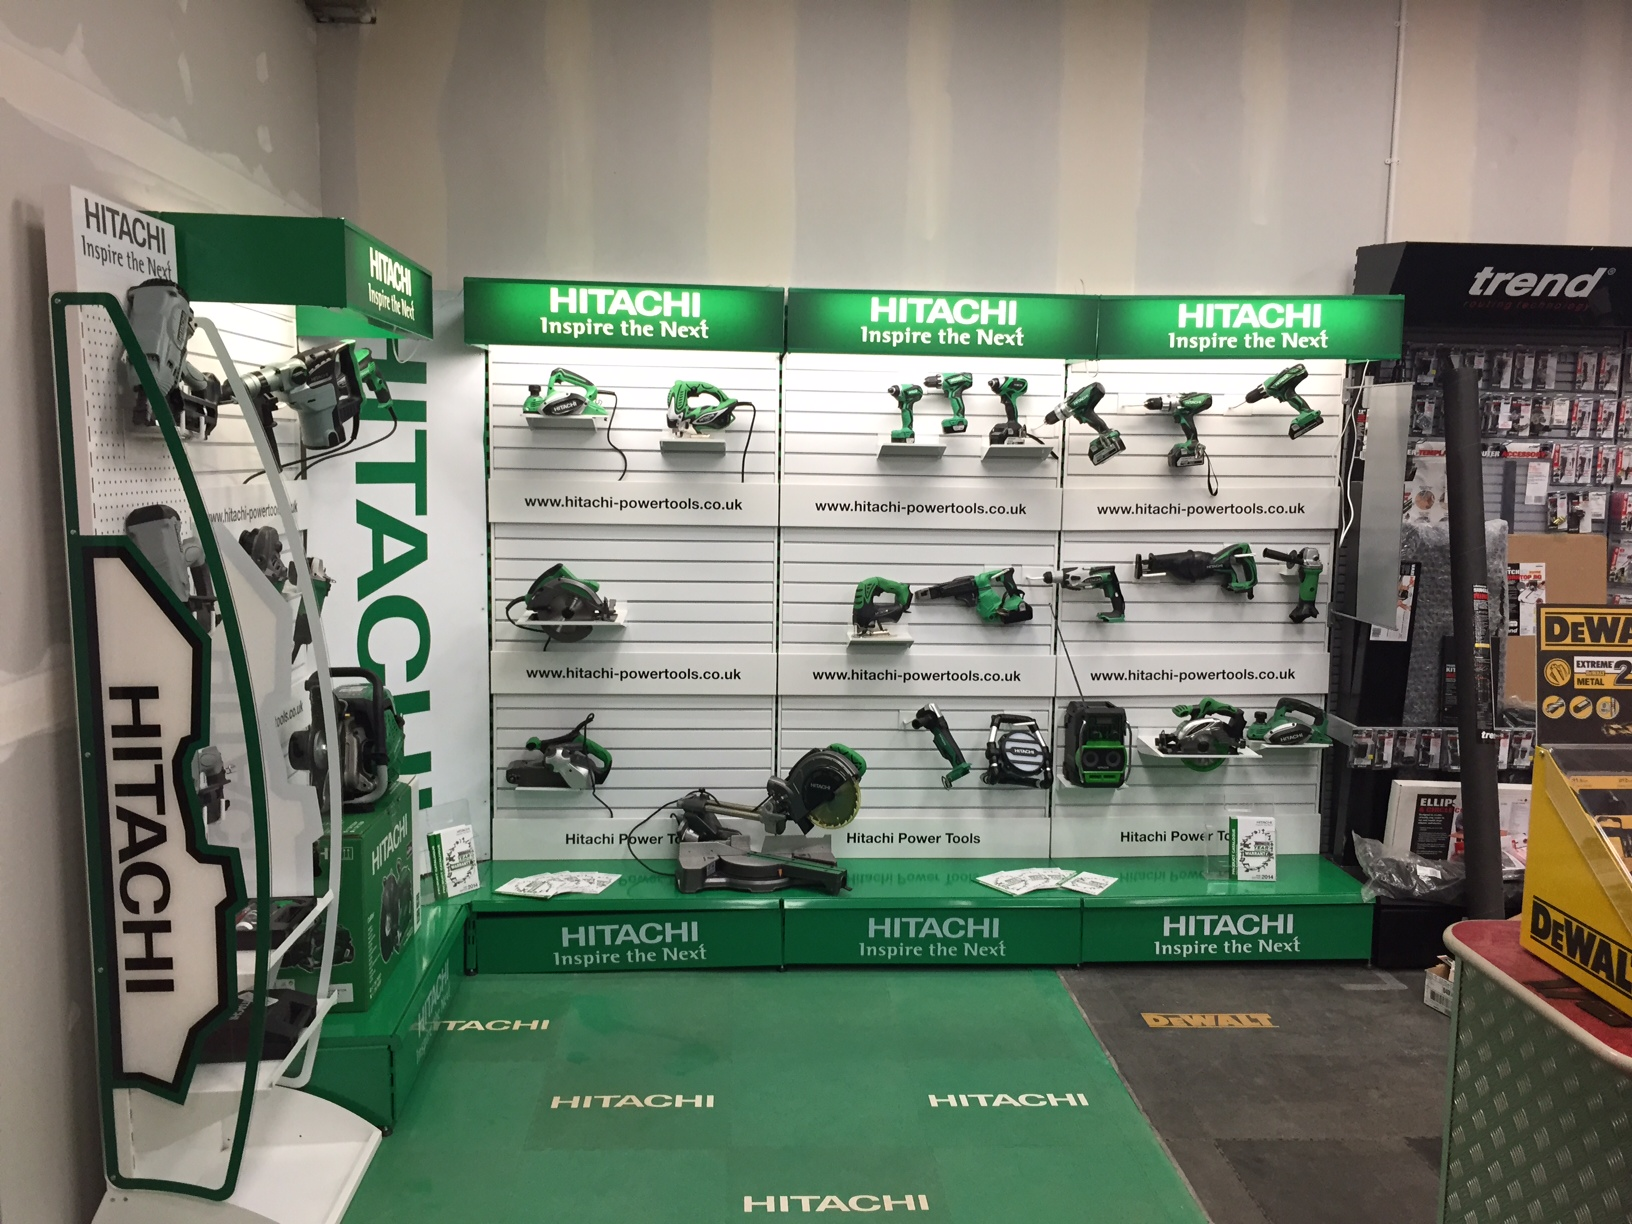 point of sale hitachi power tools ecotile